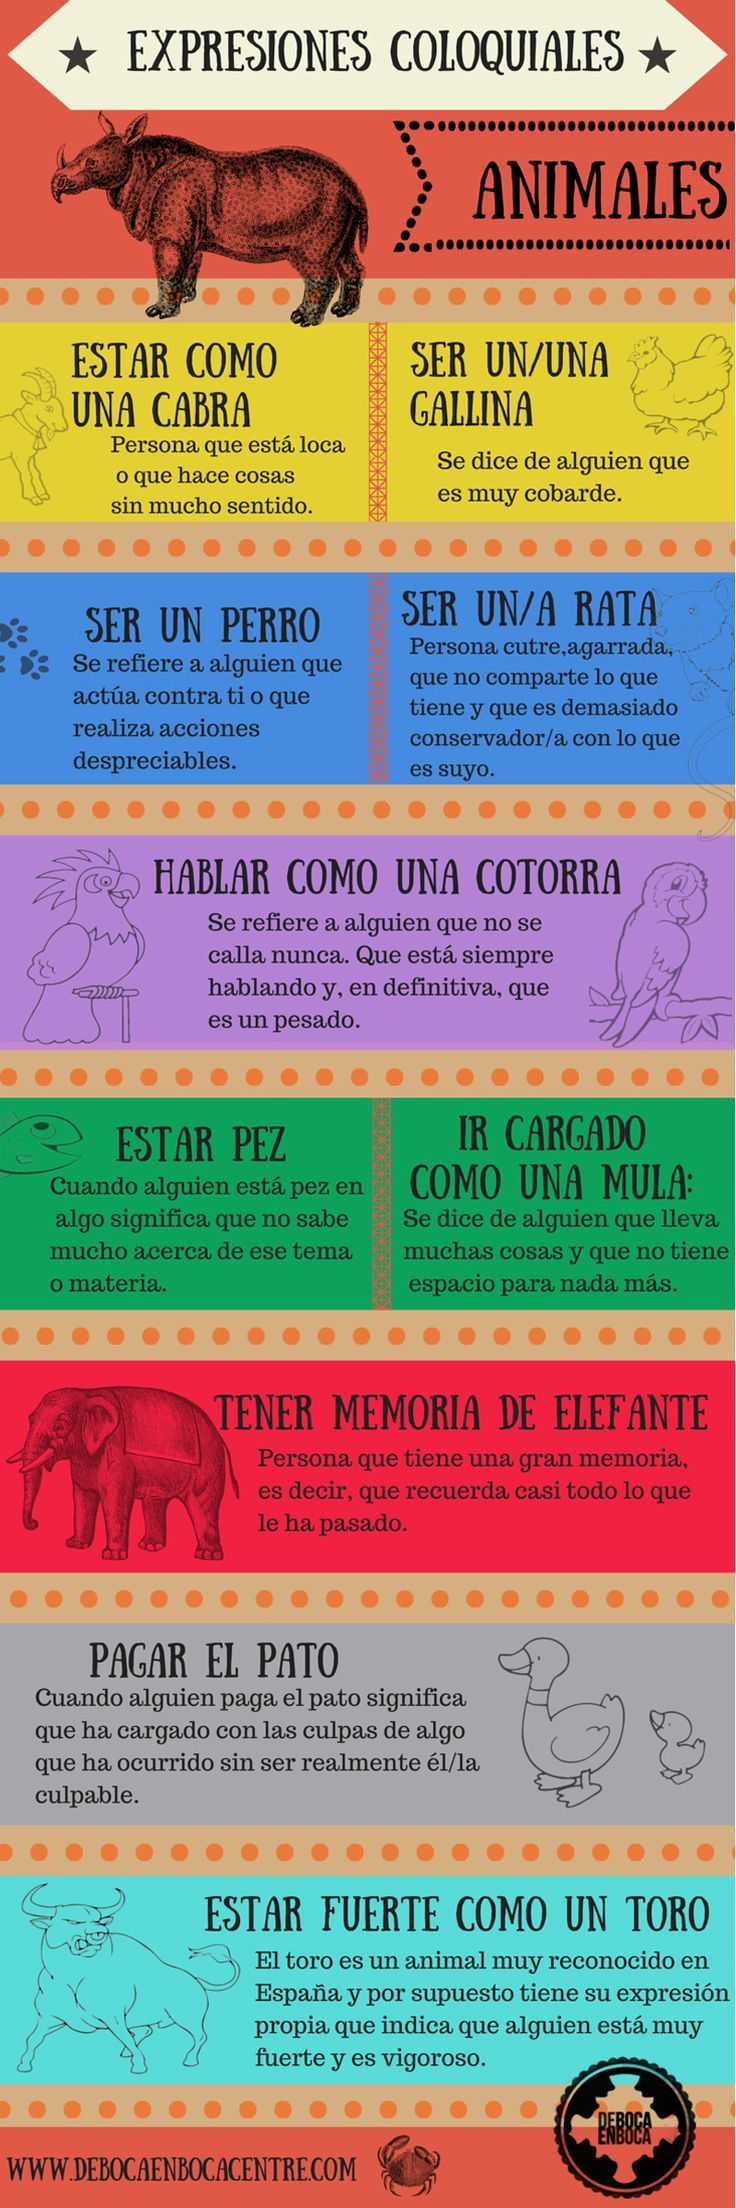 121 best Refranes images on Pinterest | Speak spanish, Spanish ...